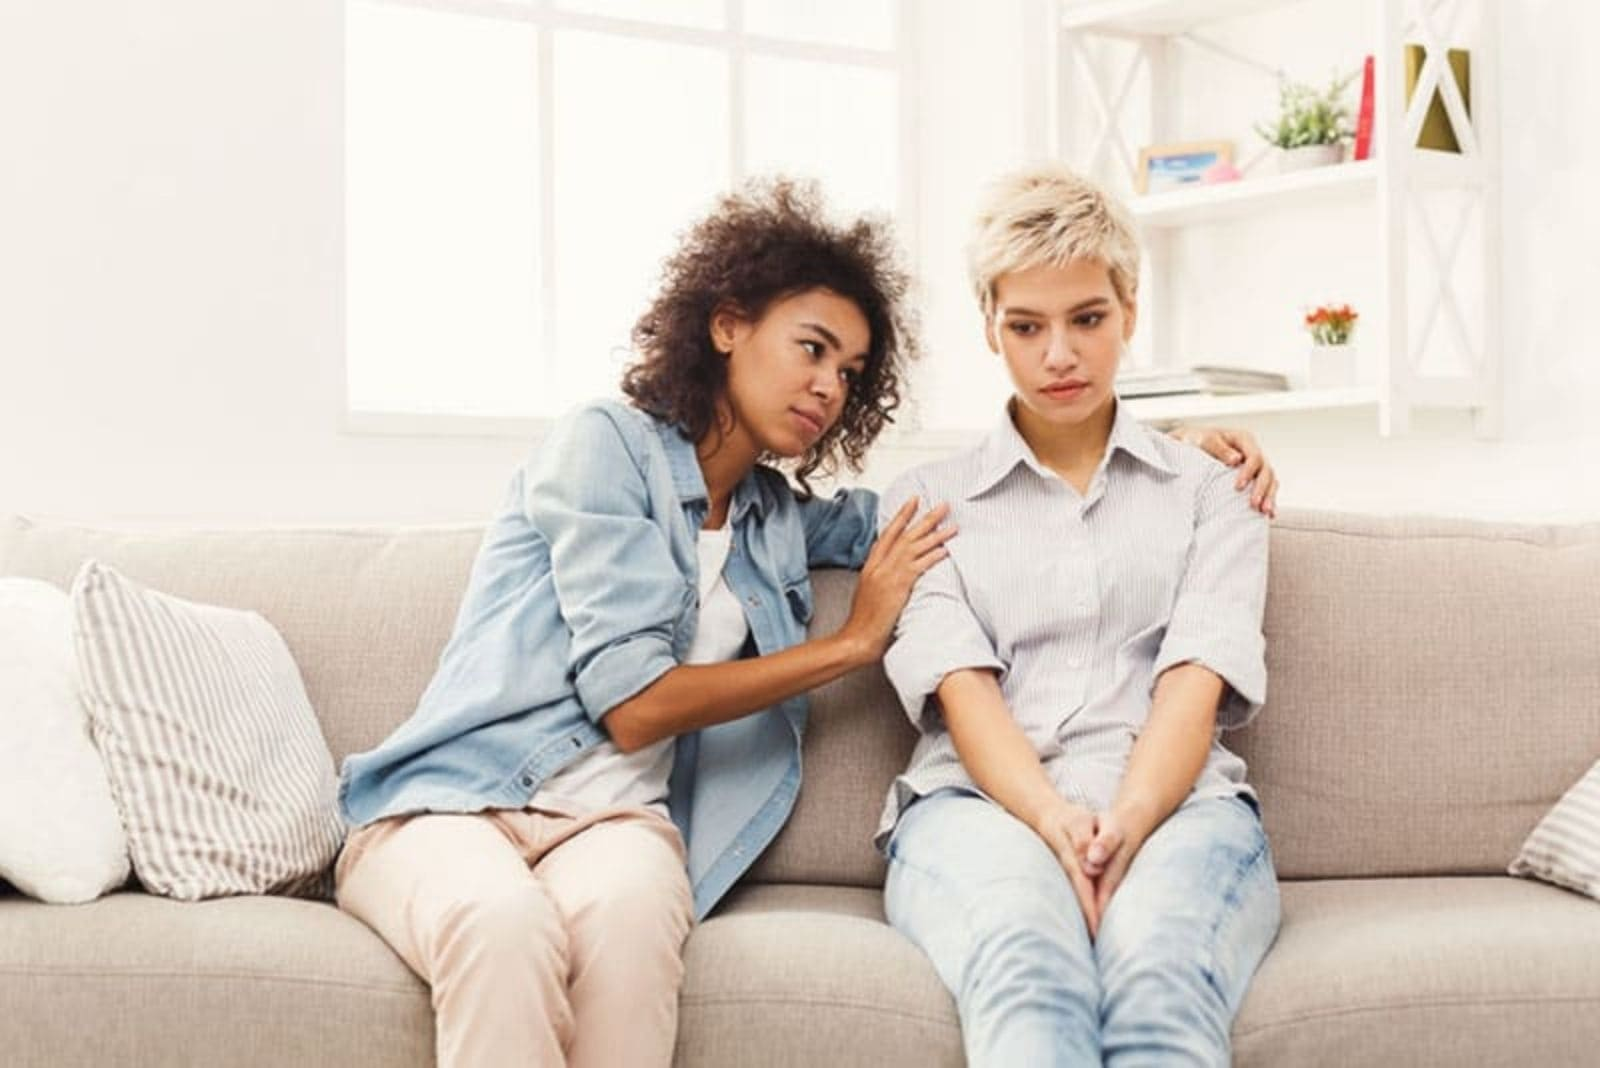 two women sit on the couch and comfort her